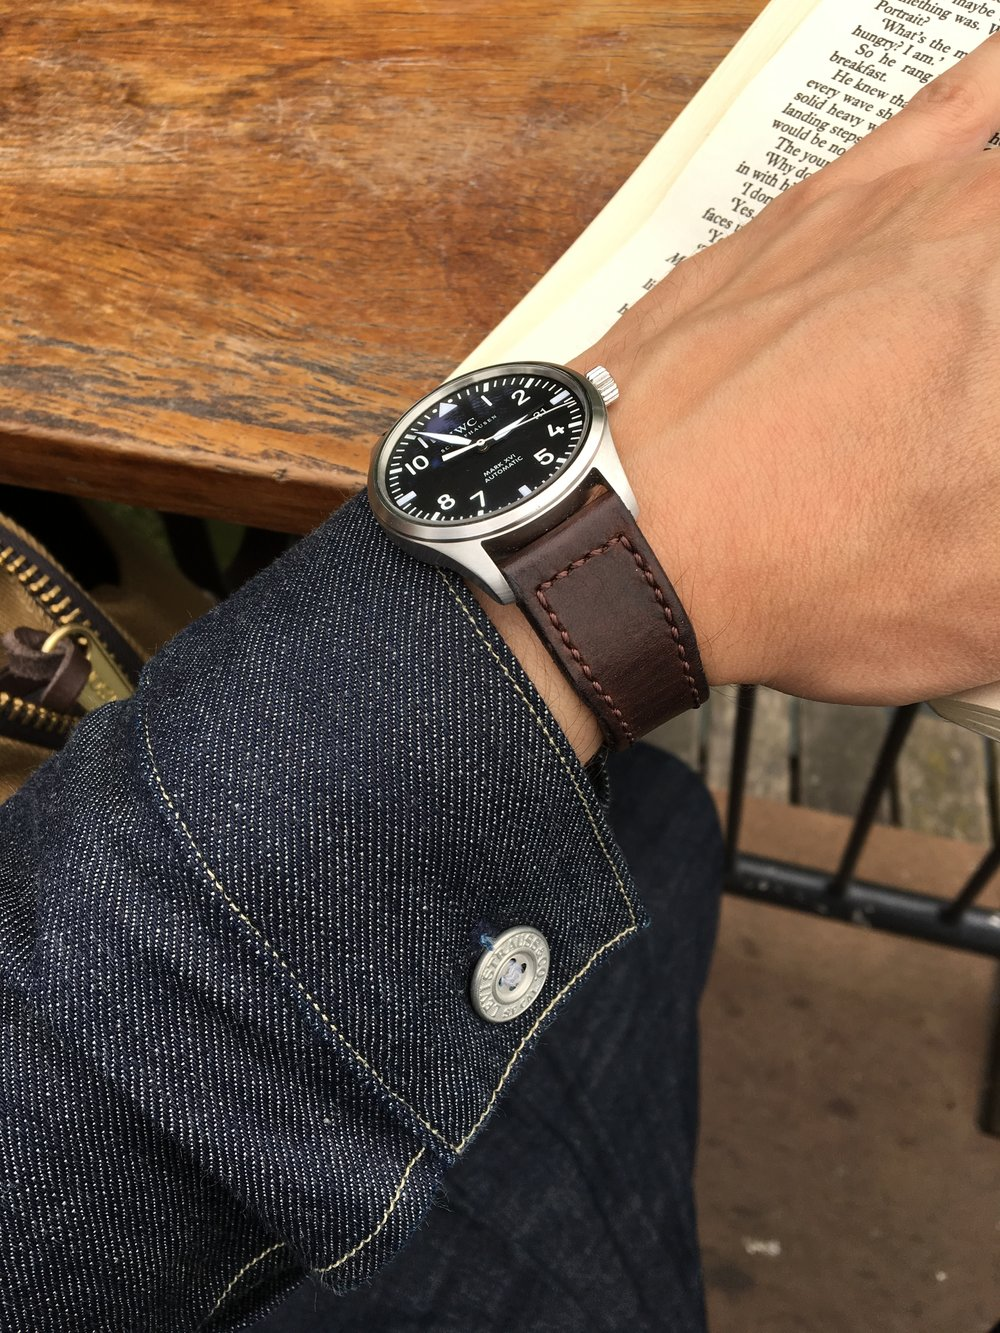 Casual snob IWC Mark XVI and Brown Strap.JPG